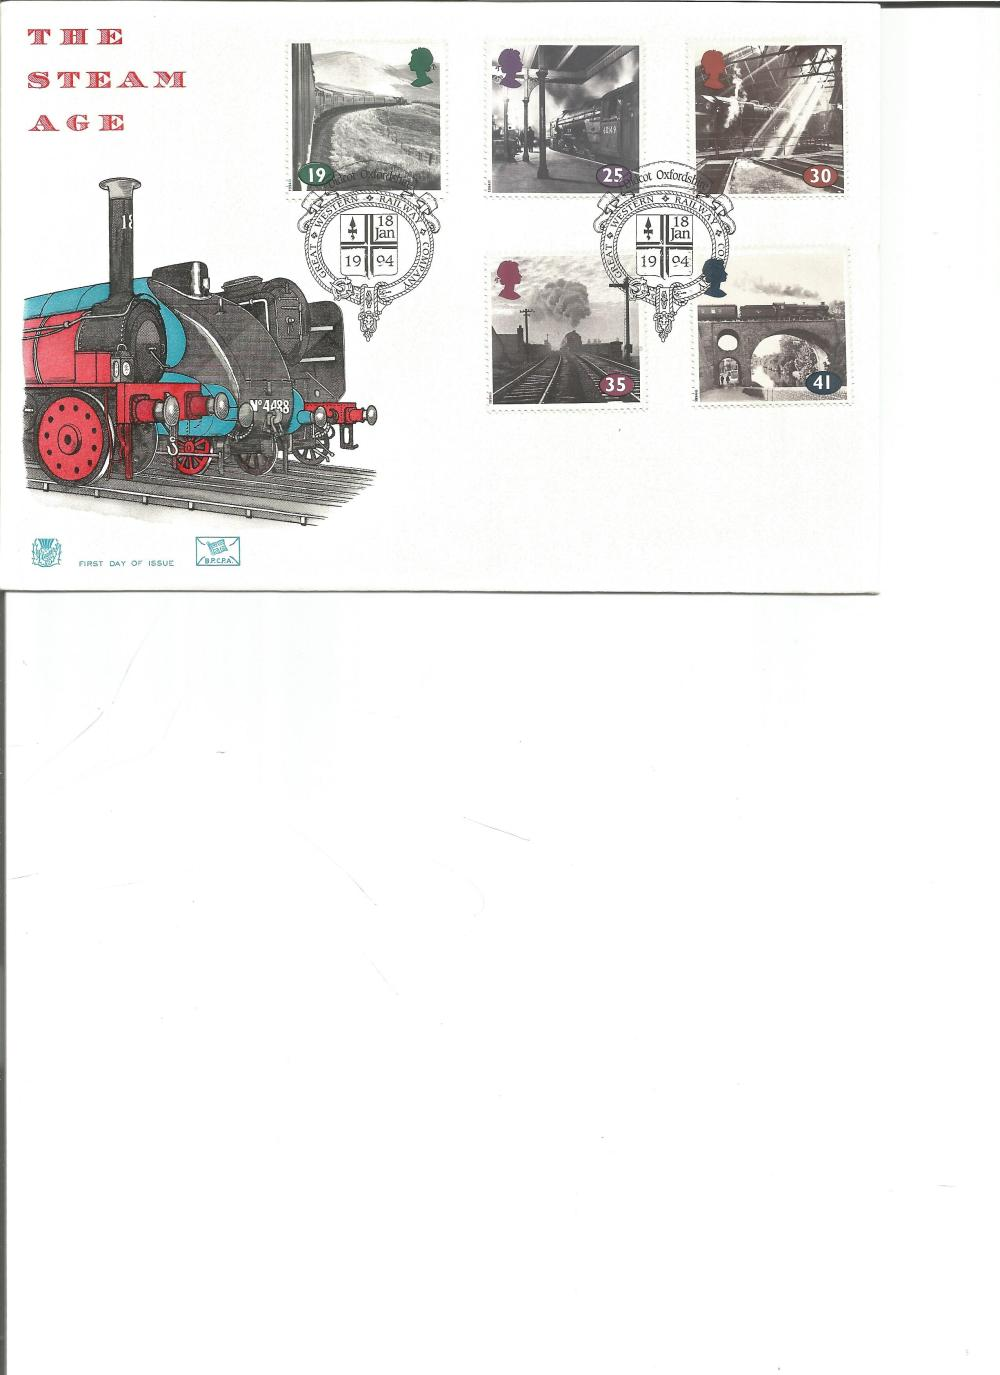 FDC The Steam Age c/w set of five commemorative stamps PM Didcot Oxfordshire, Great Western